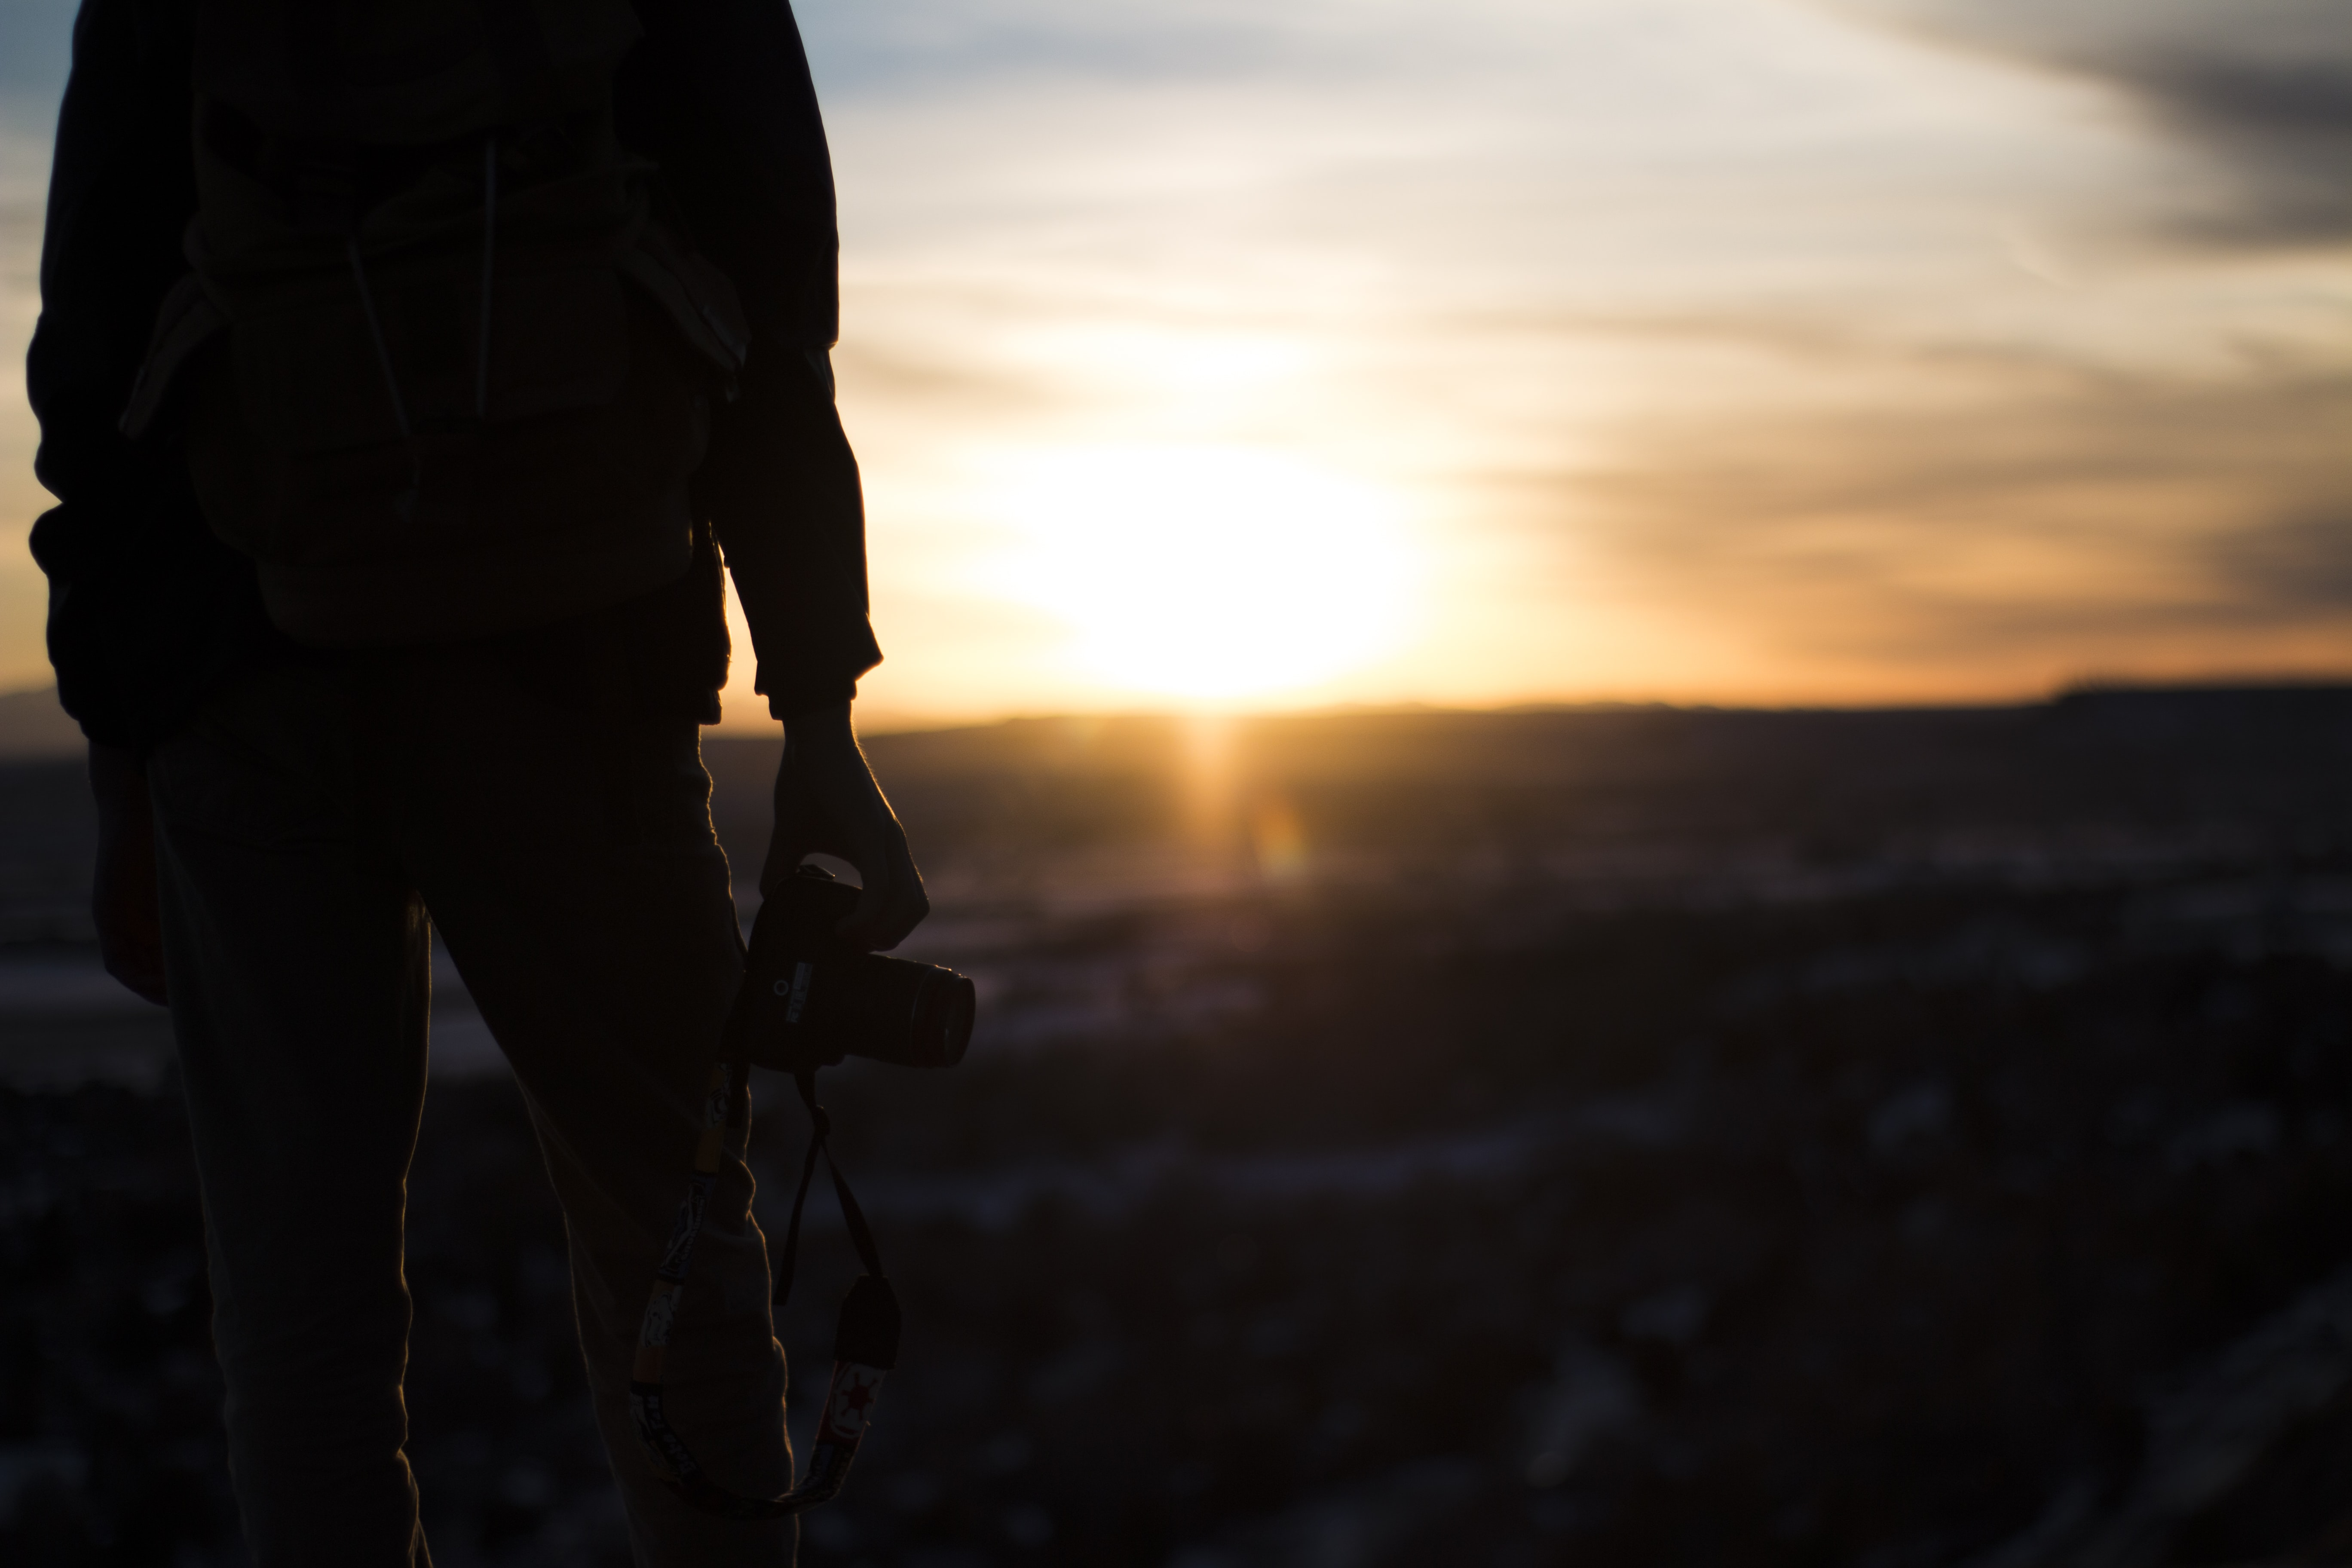 The silhouette of a photographer holding a camera during sunset or sunrise in Billings